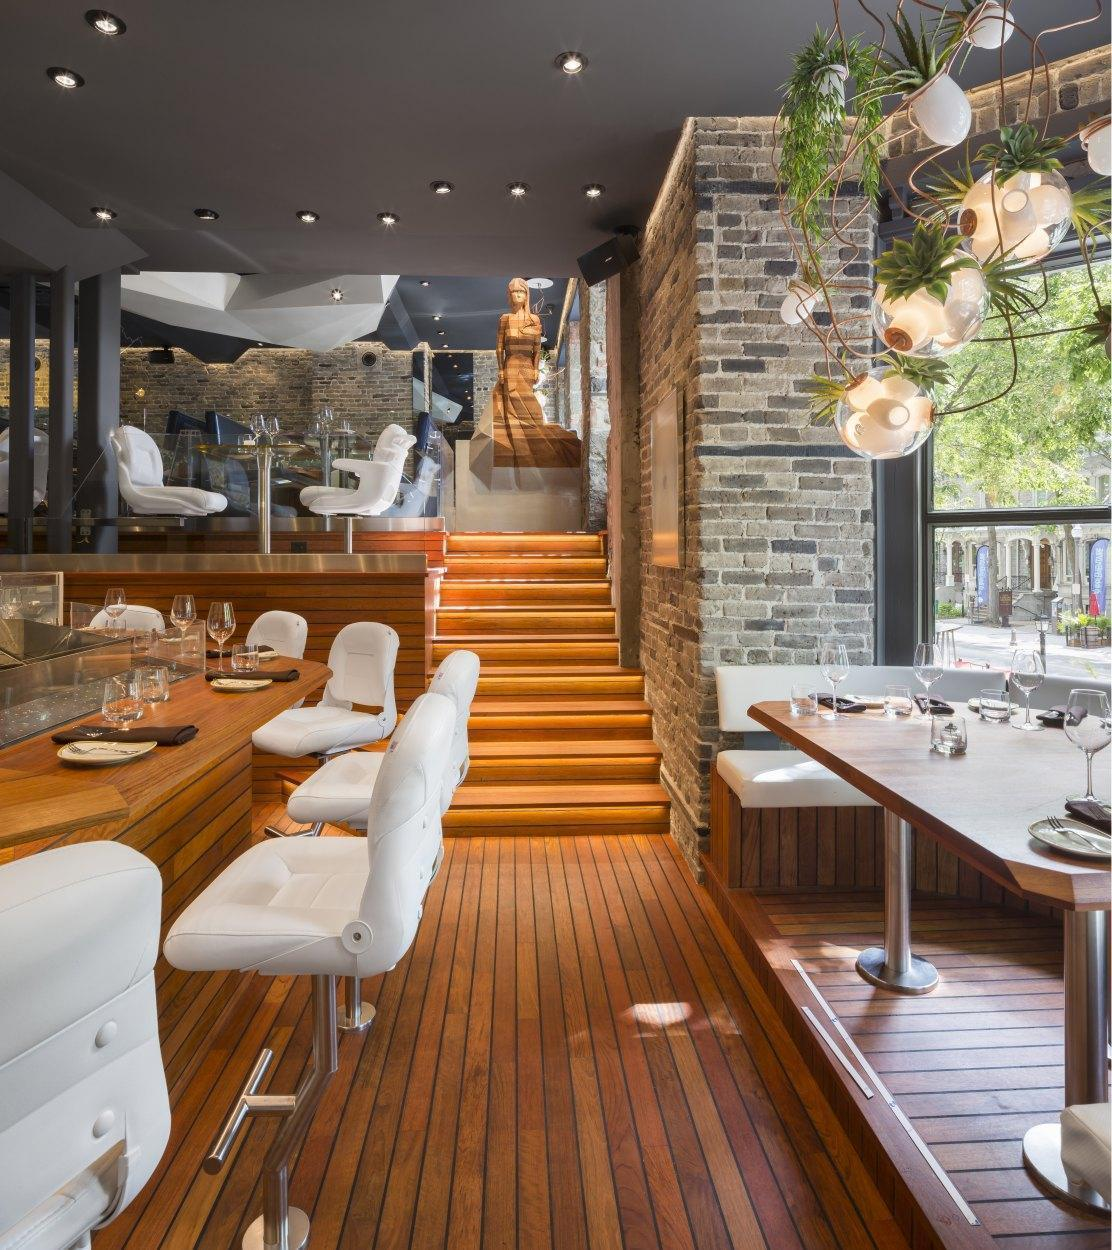 The best restaurants to dine at this fall - Rhapsody Magazine